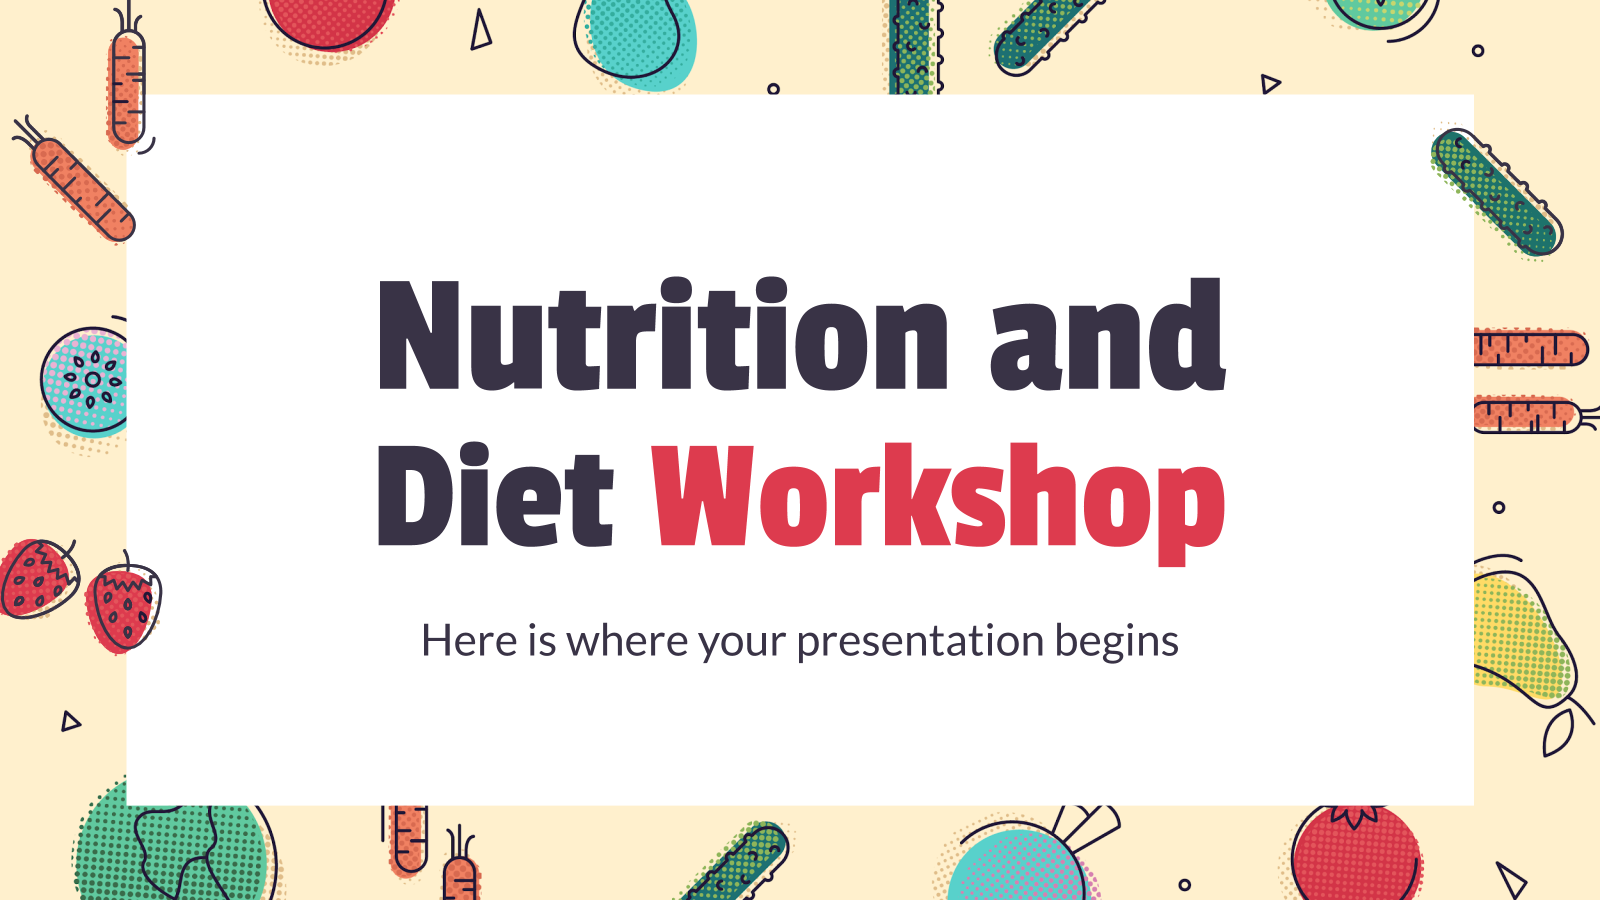 Nutrition and Diet Workshop presentation template